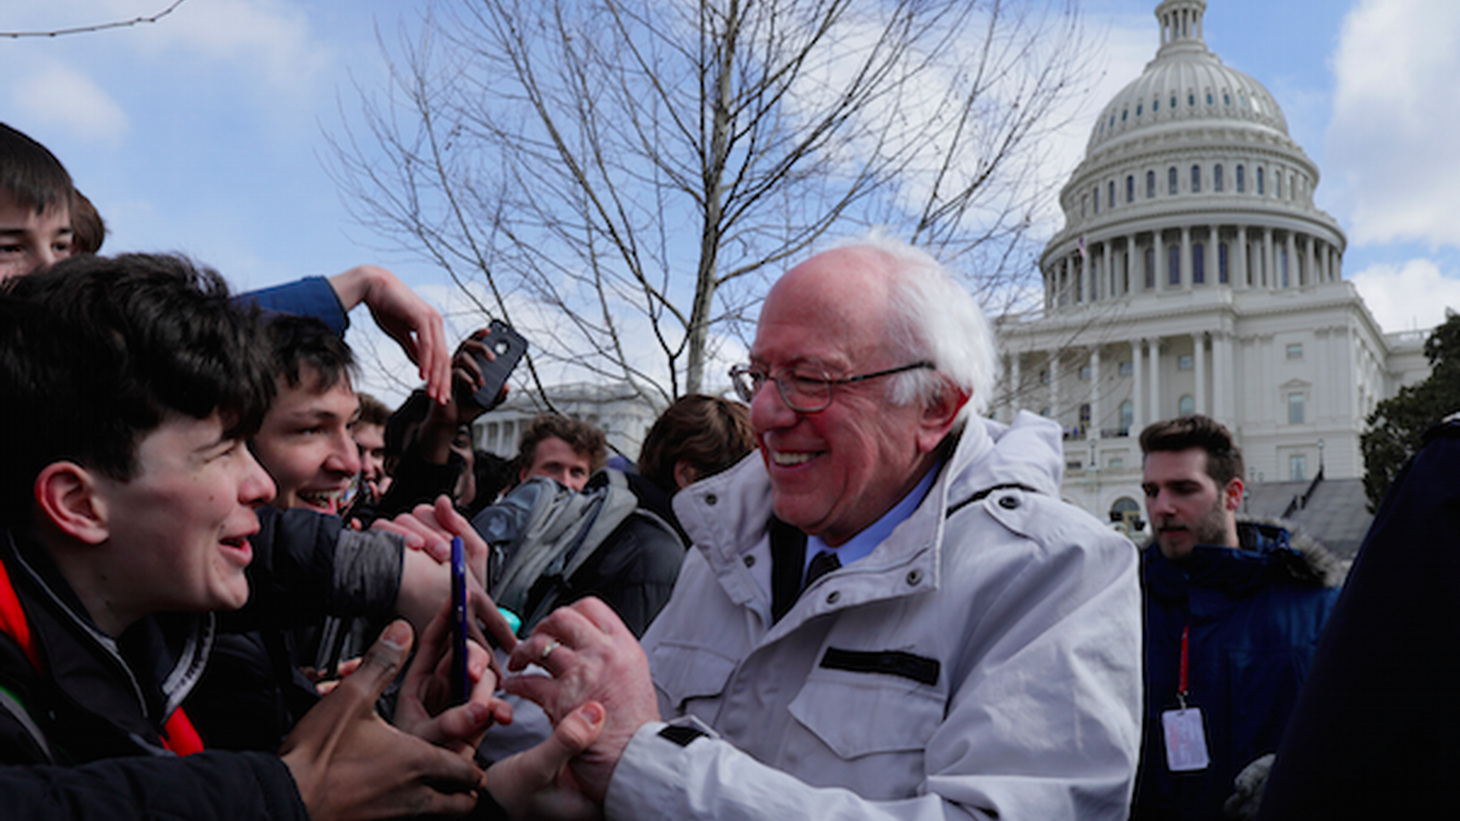 Senator Bernie Sanders has released hundreds of video clips, interviews and Facebook Live events in the last year. Millions of people tune into his talks about single payer health care, the depravity of the Trump team and corporate media.